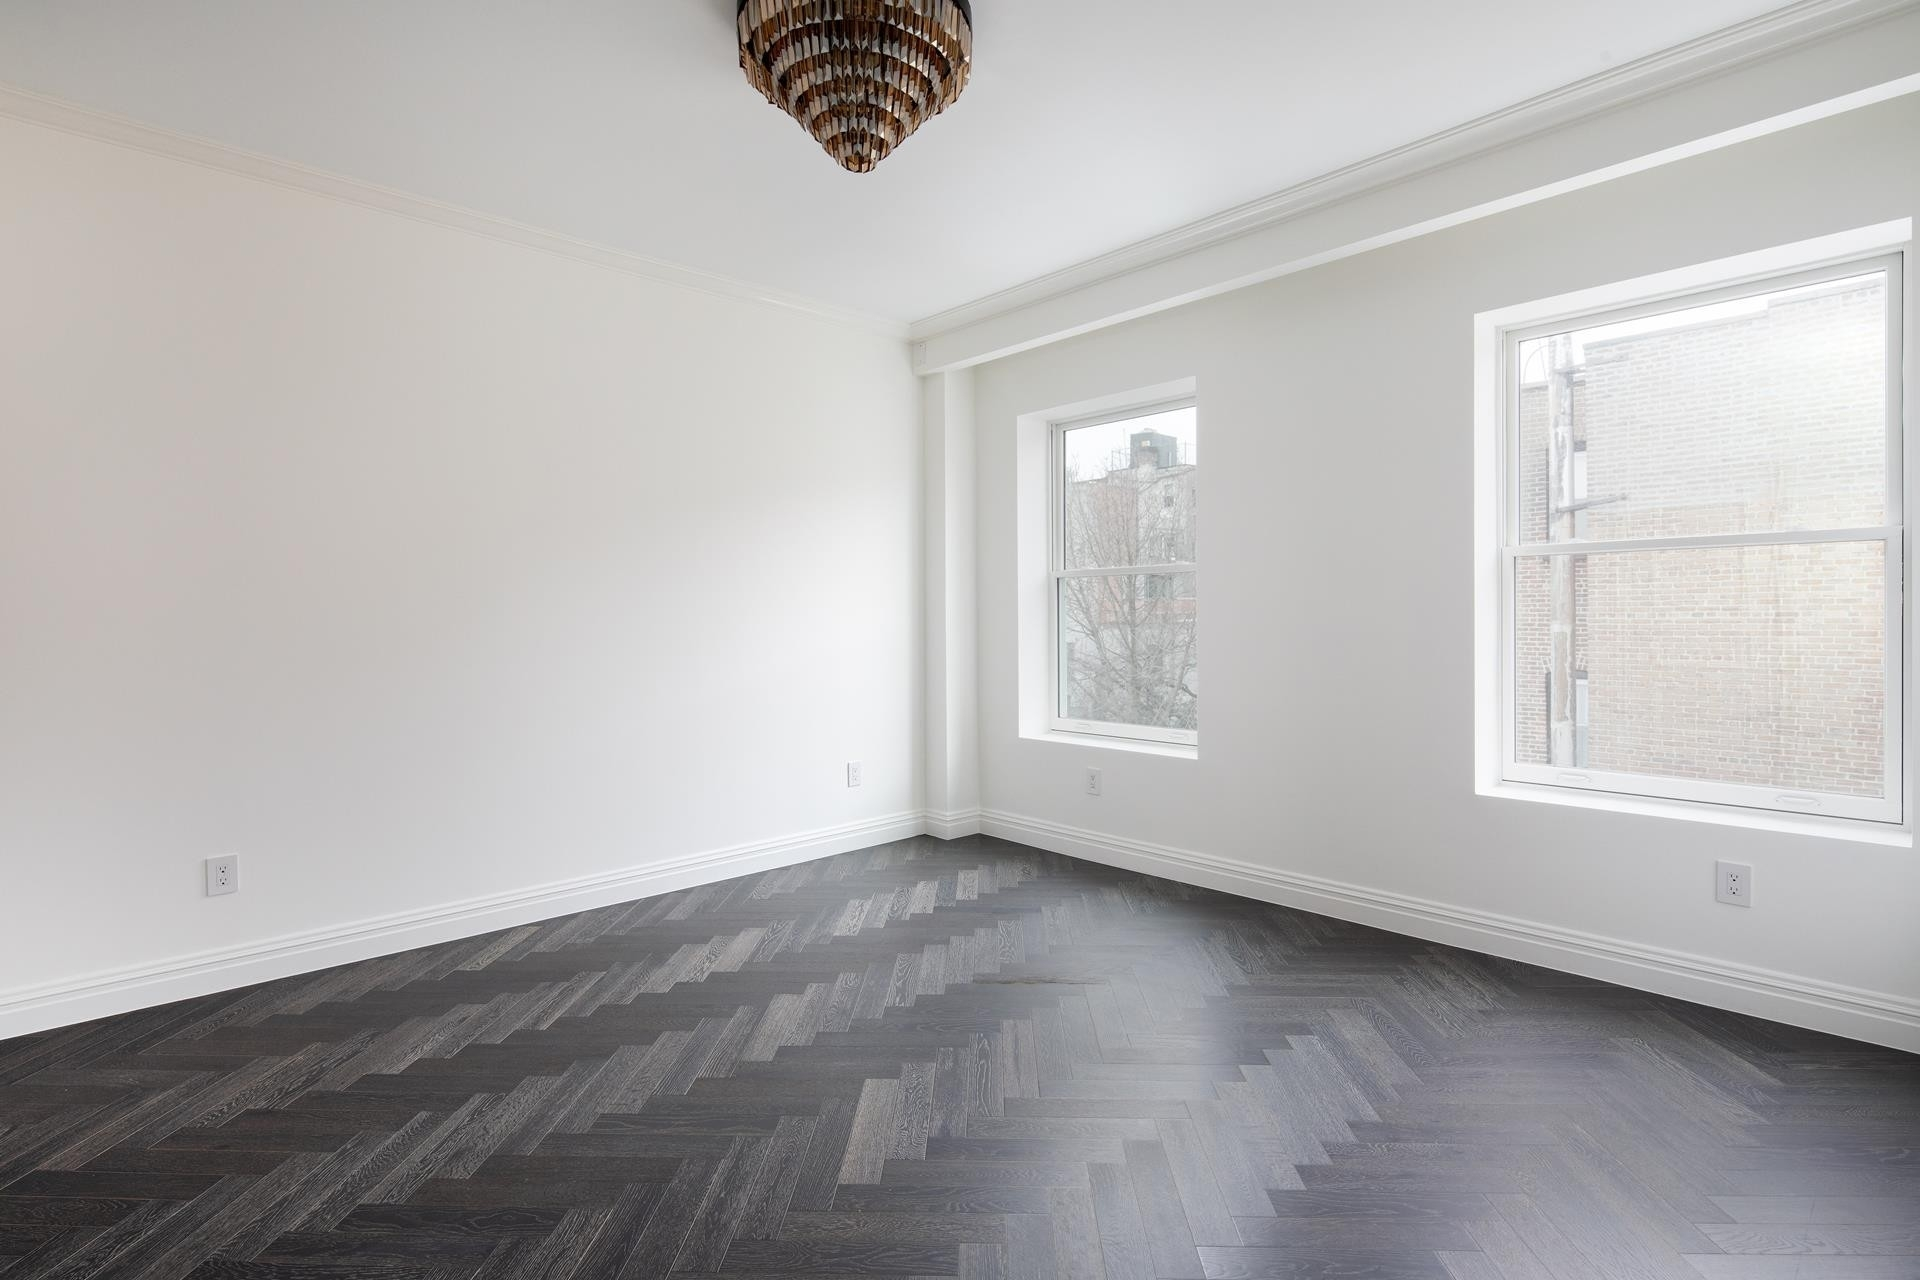 10. Single Family Townhouse for Sale at 50 HICKS ST , TH Brooklyn Heights, Brooklyn, NY 11201